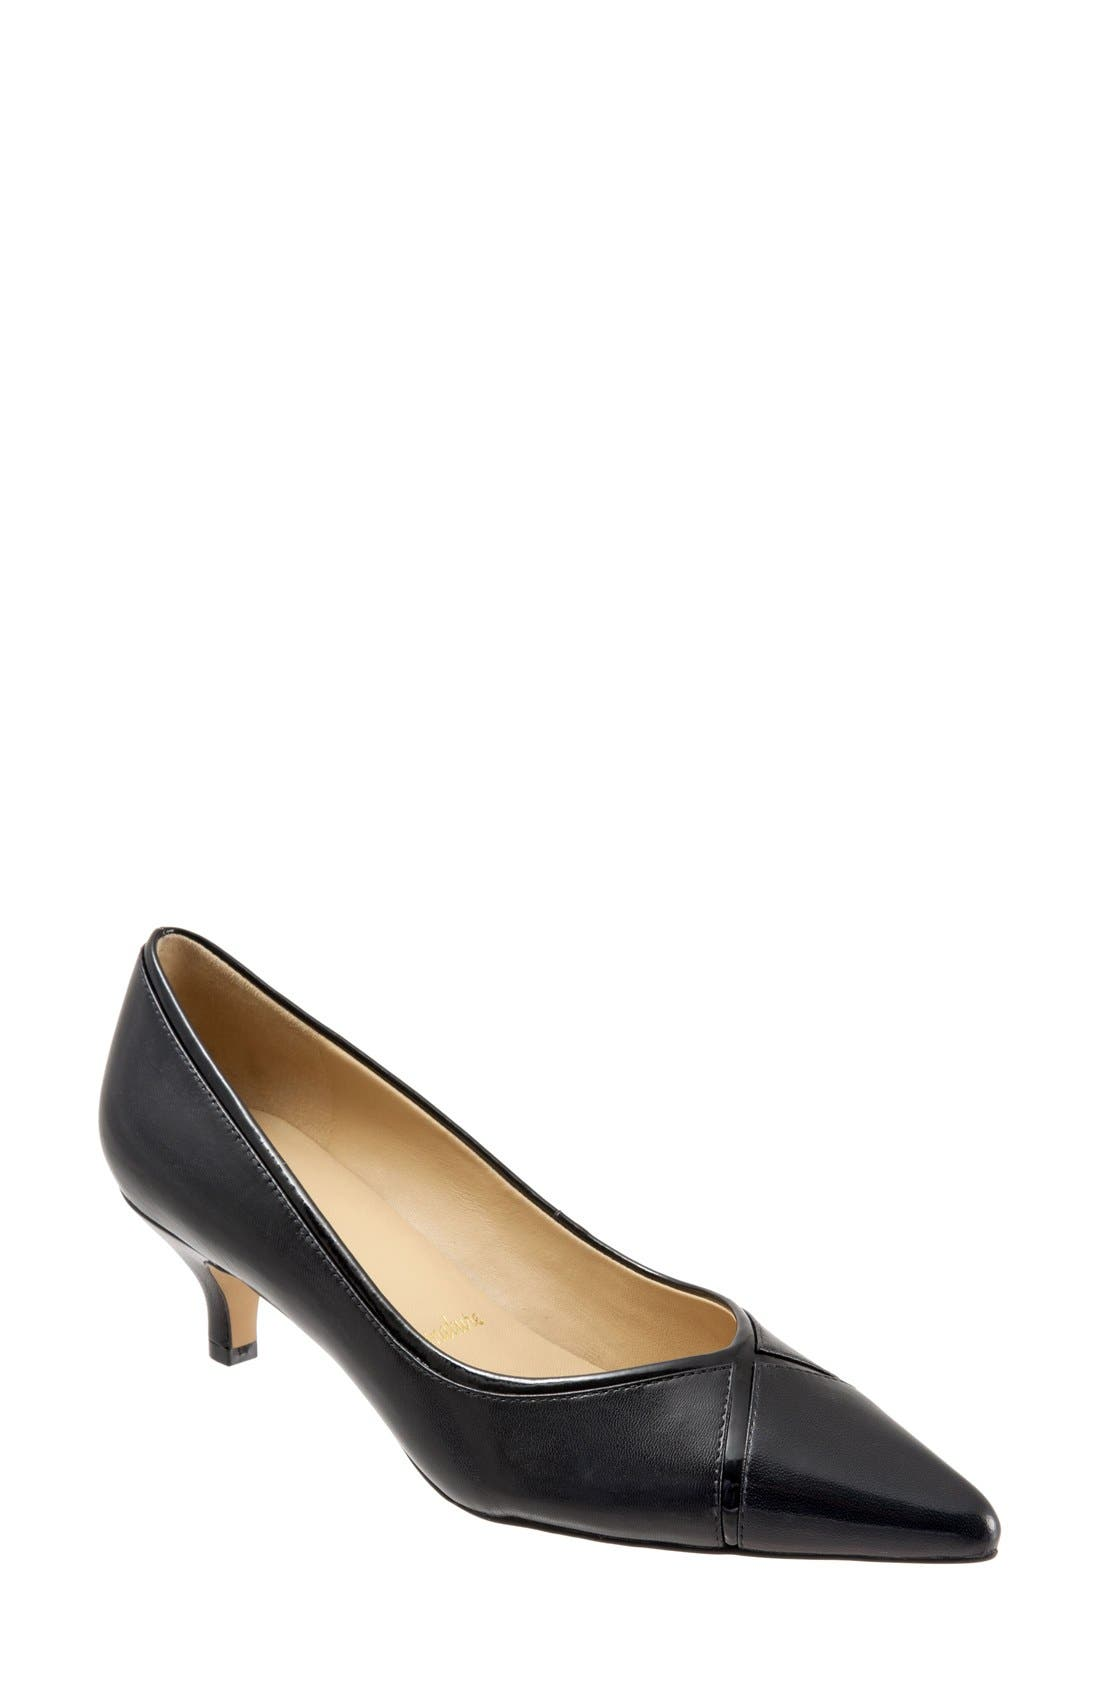 'Kelsey' Pointy Toe Pump,                         Main,                         color, BLACK/ BLACK